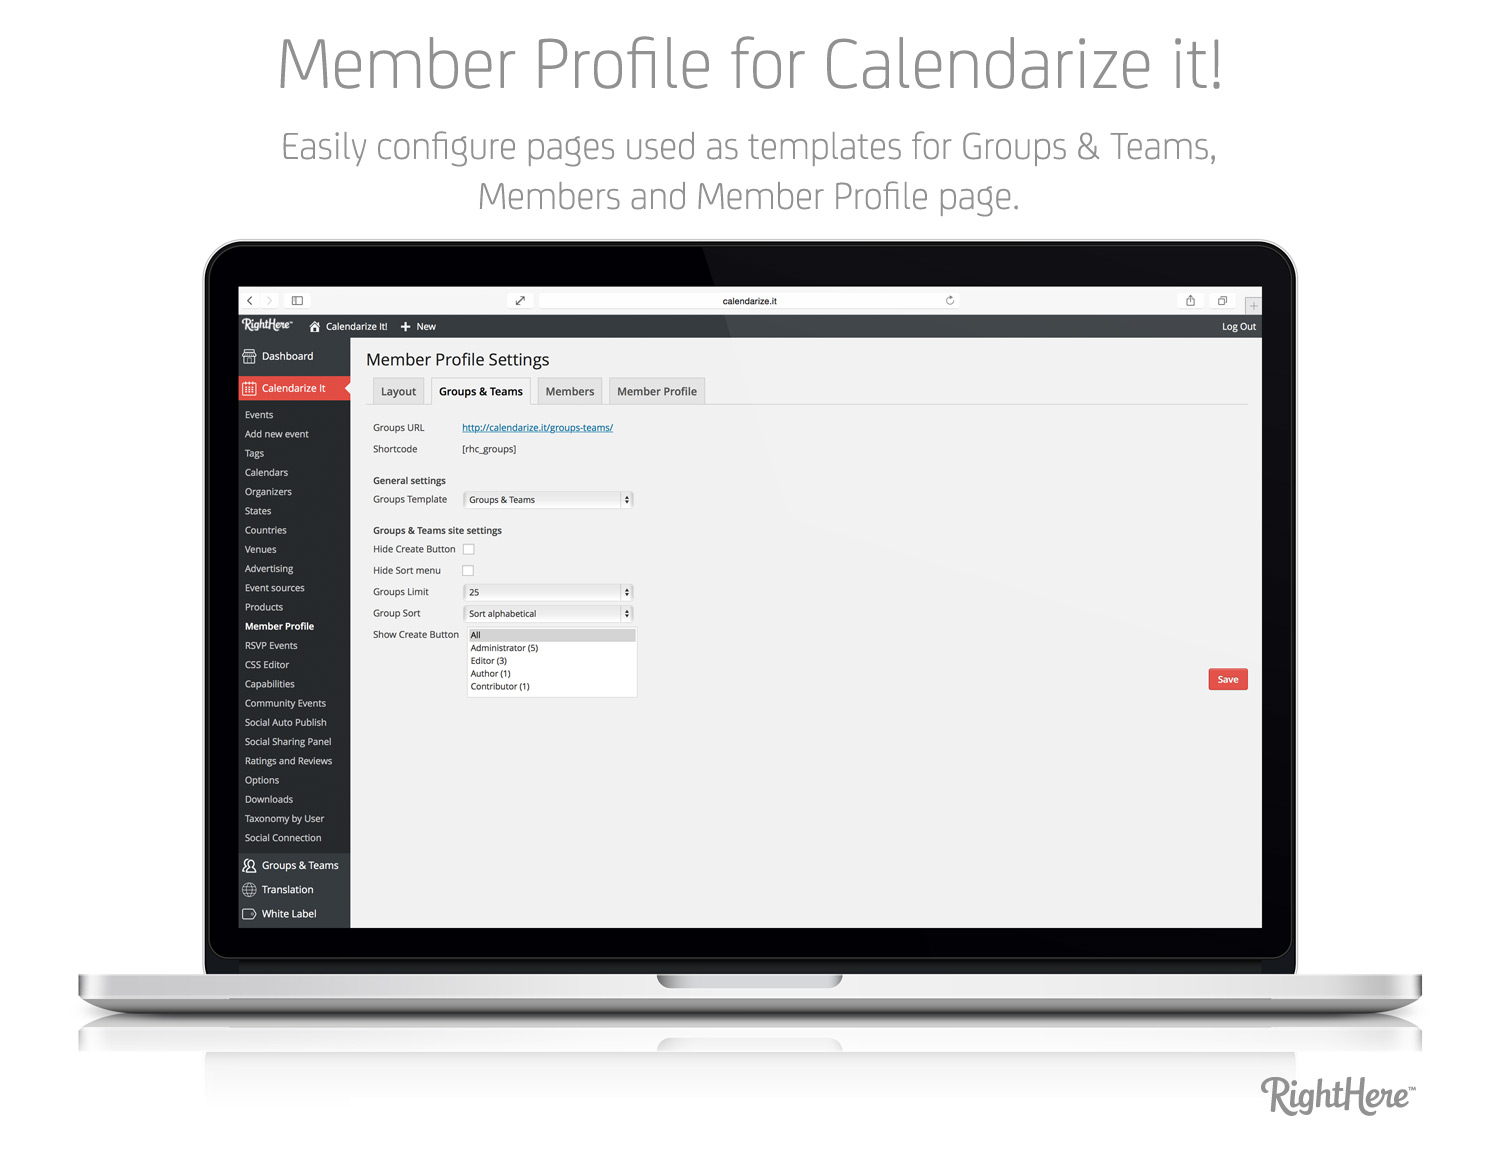 Member Profile for Calendarize it! - Easily configure pages used a templates for Groups & Teams, Members and Member Profile page